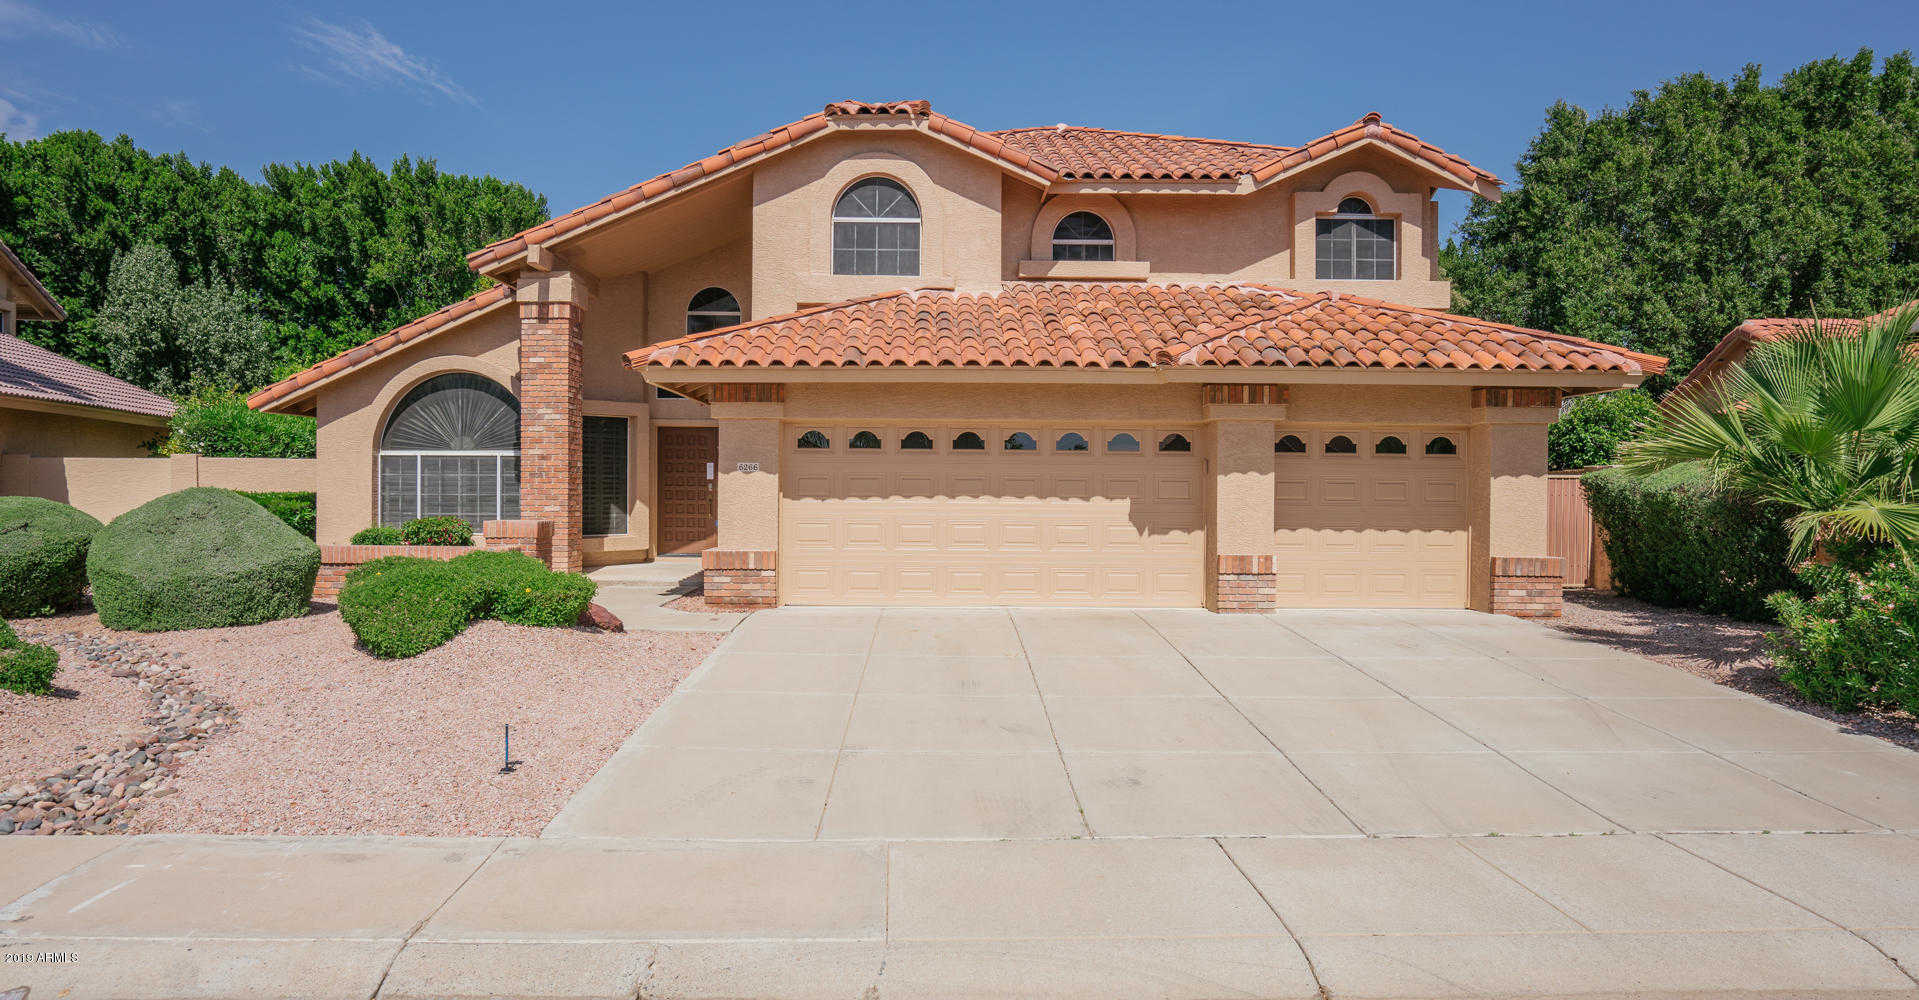 $413,000 - 5Br/3Ba - Home for Sale in Hamilton Arrowhead Ranch 4 Lot 1-106 Tr A-c, Glendale